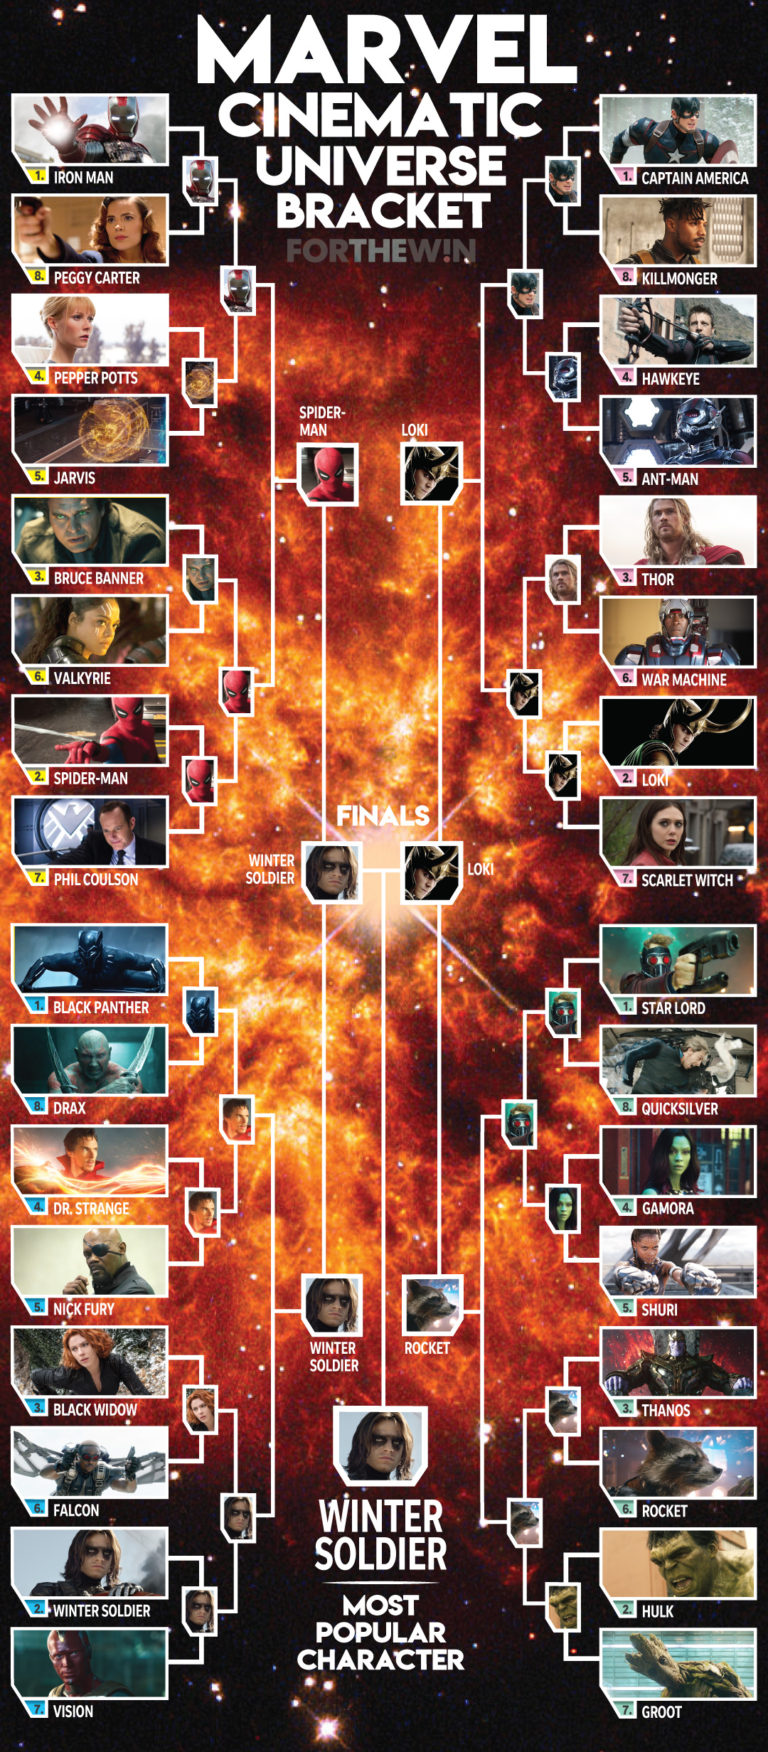 Marvel most popular character bracket by Greg Hester